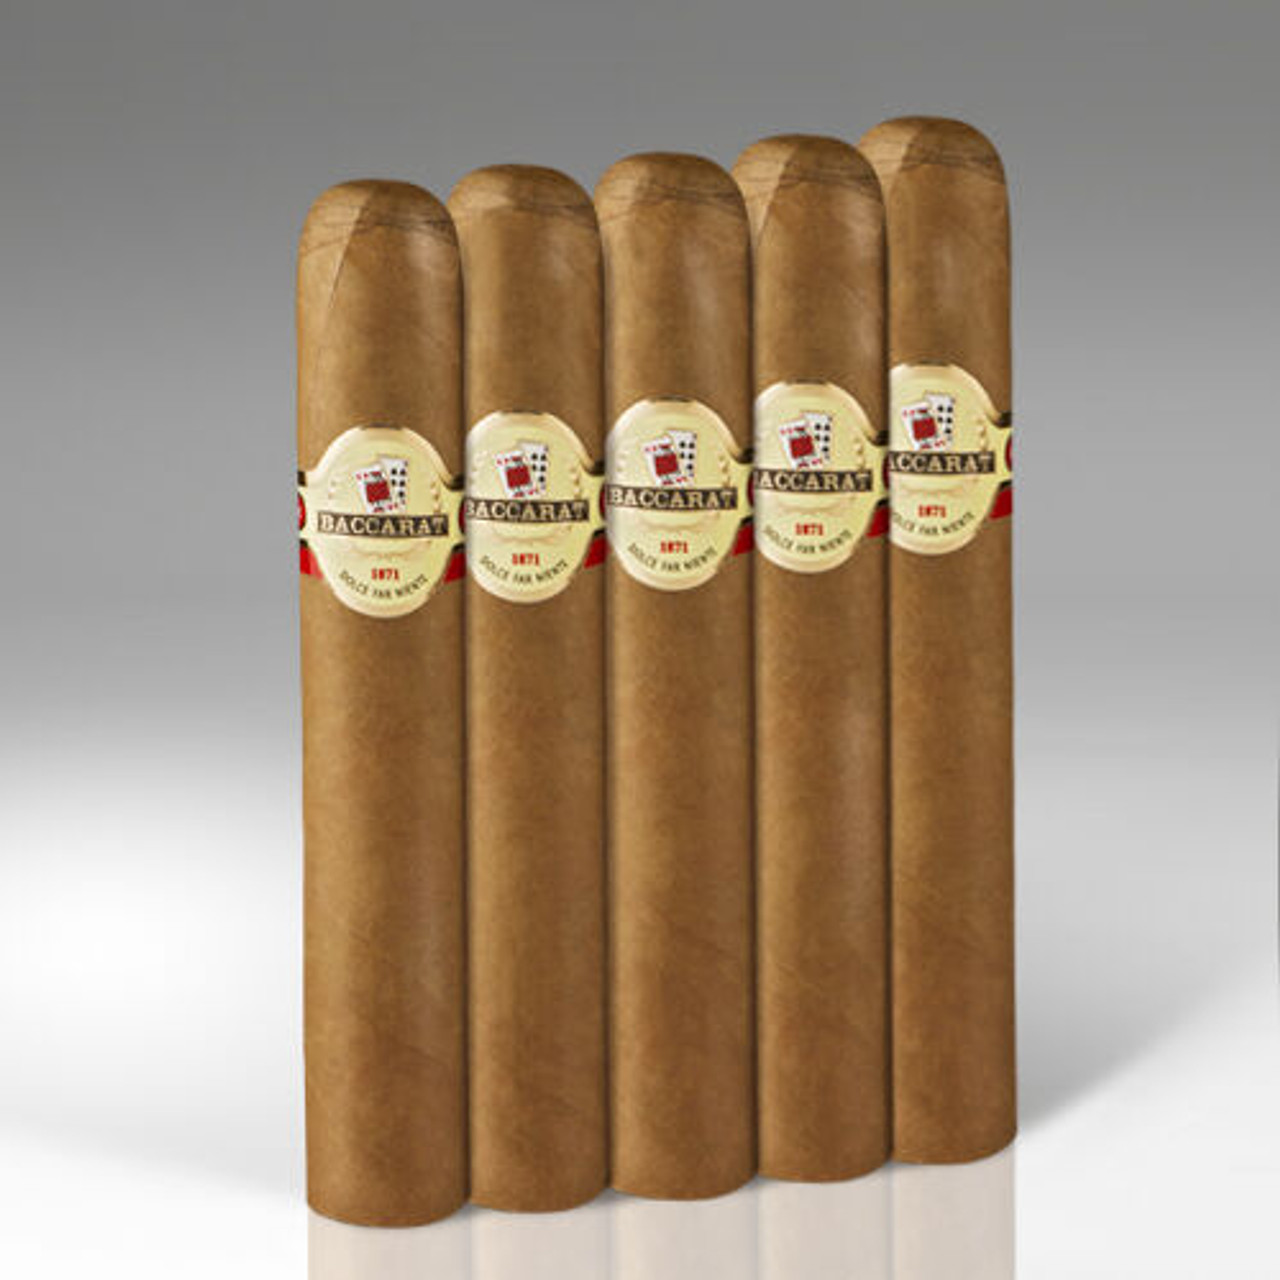 Baccarat Gordo Cigars - 6 x 60 (Pack of 5)